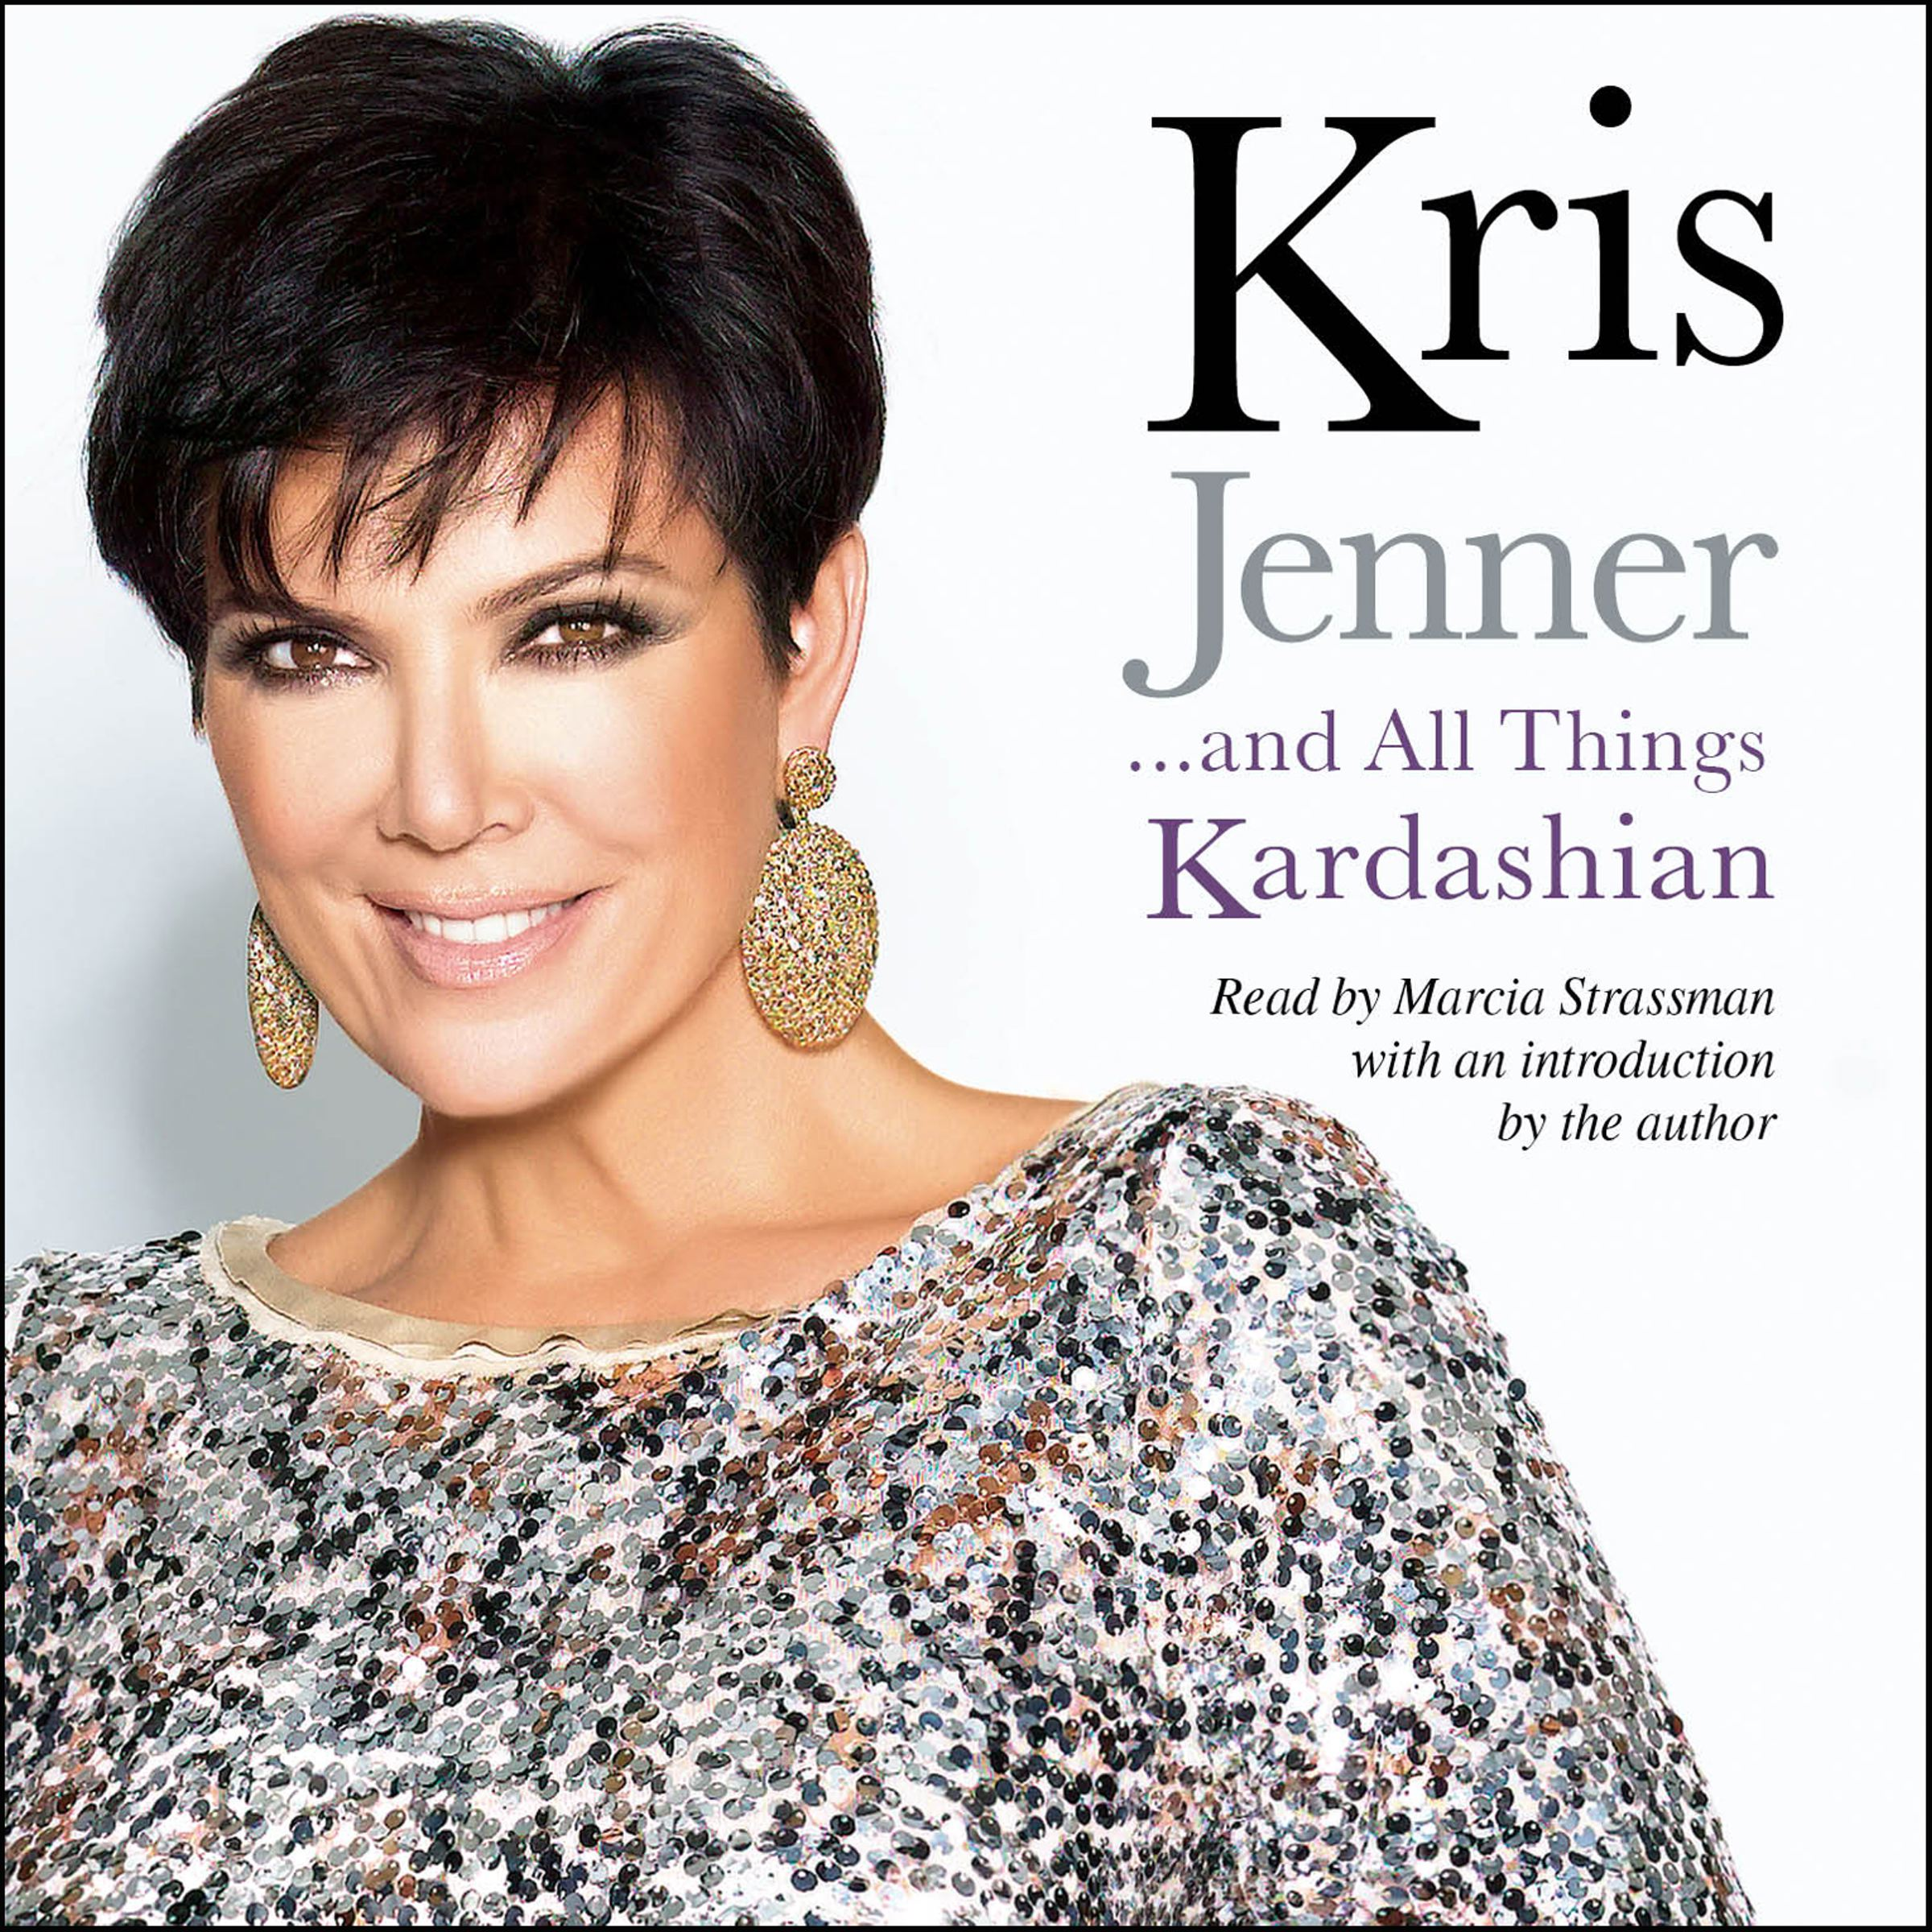 Kris-jenner-and-all-things-kardashian-9781442346932_hr